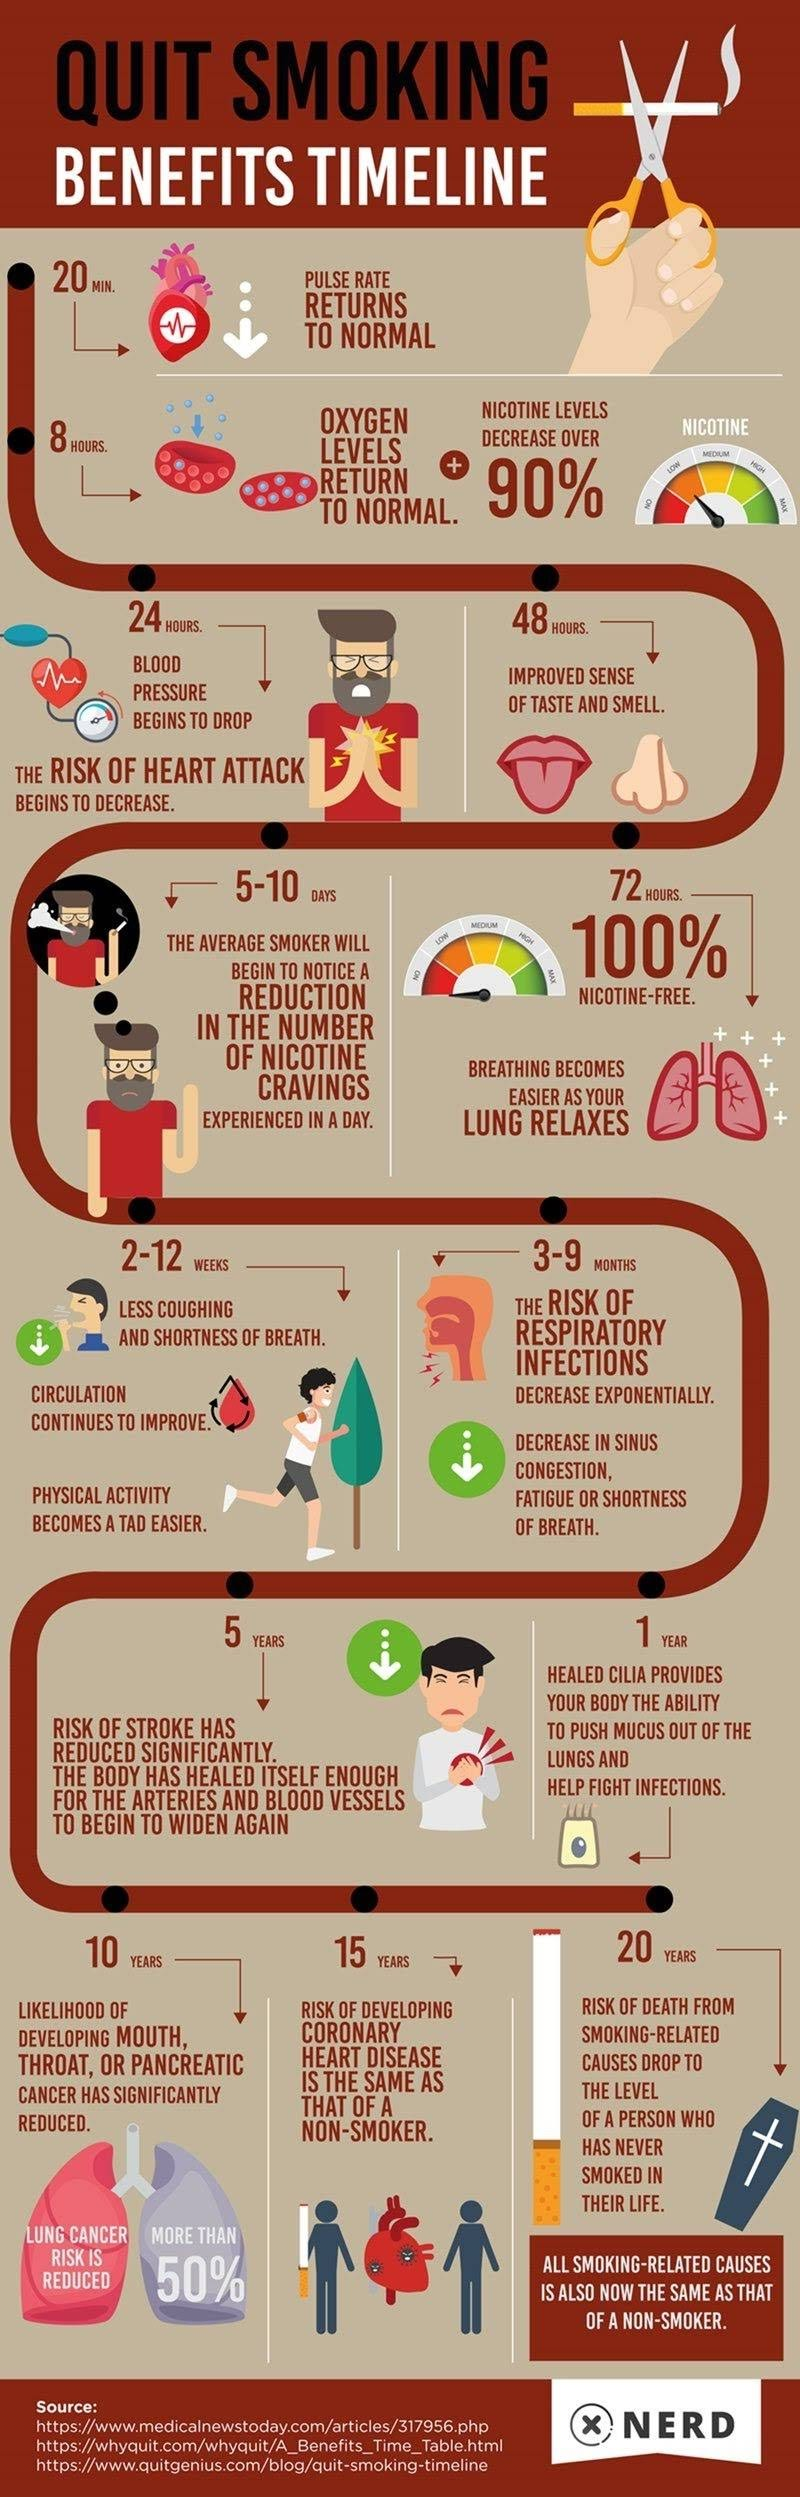 When you stop smoking (BENEFITS) What happens #infographic